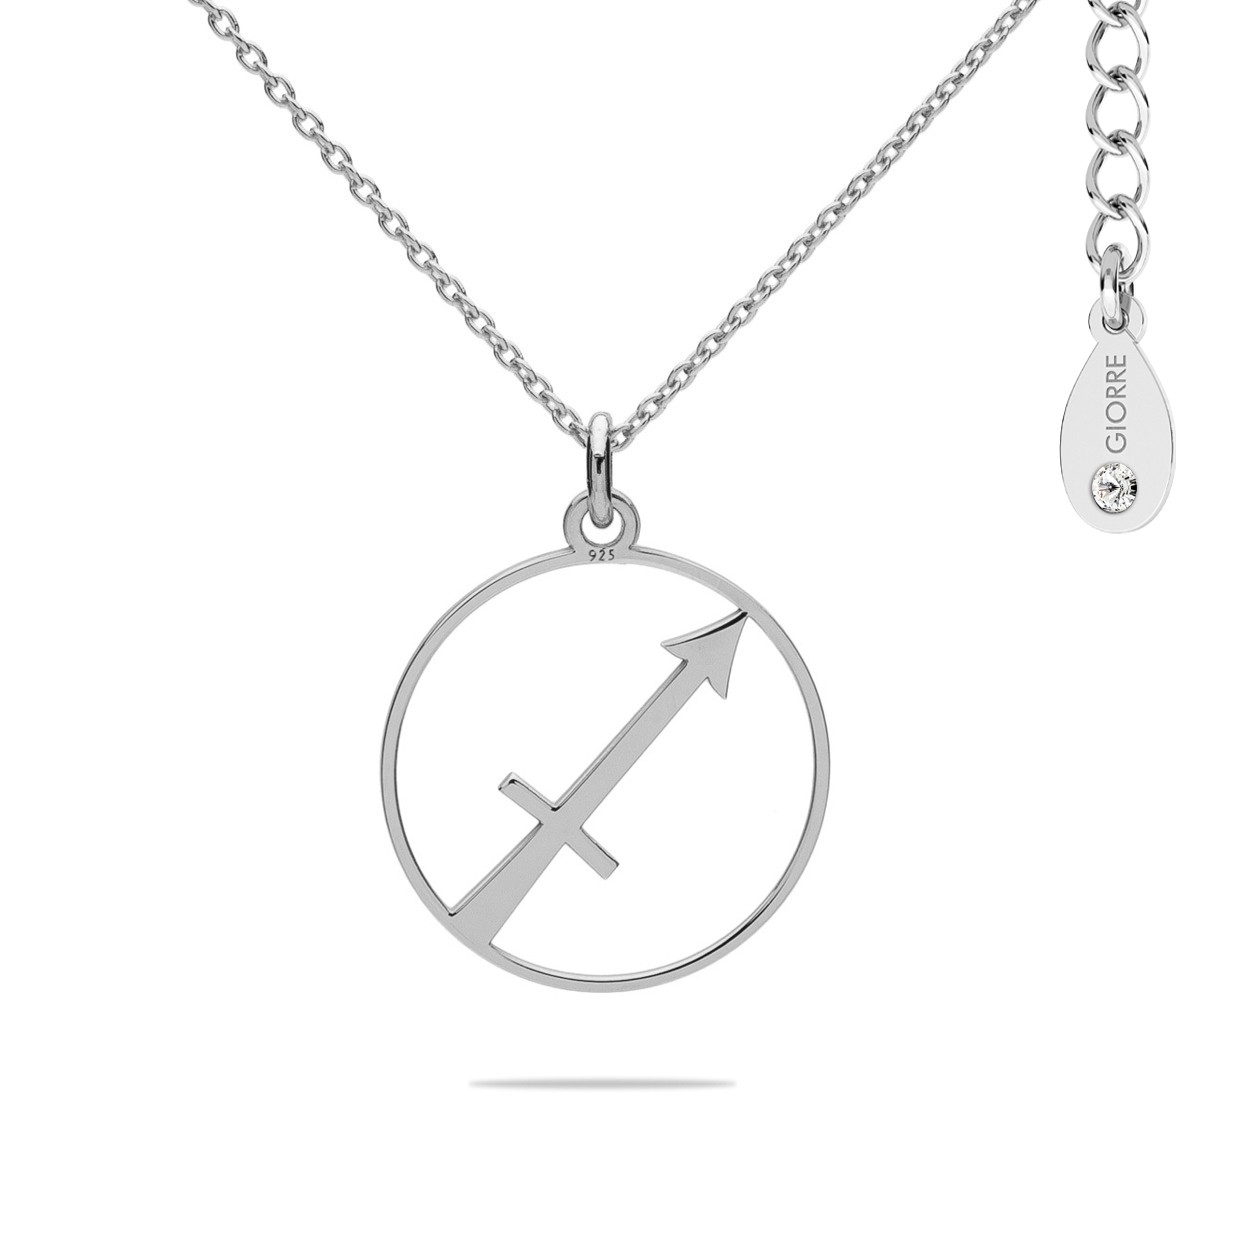 SAGITTARIUS zodiac sign necklace with Swarovski Crystals sterling silver 925